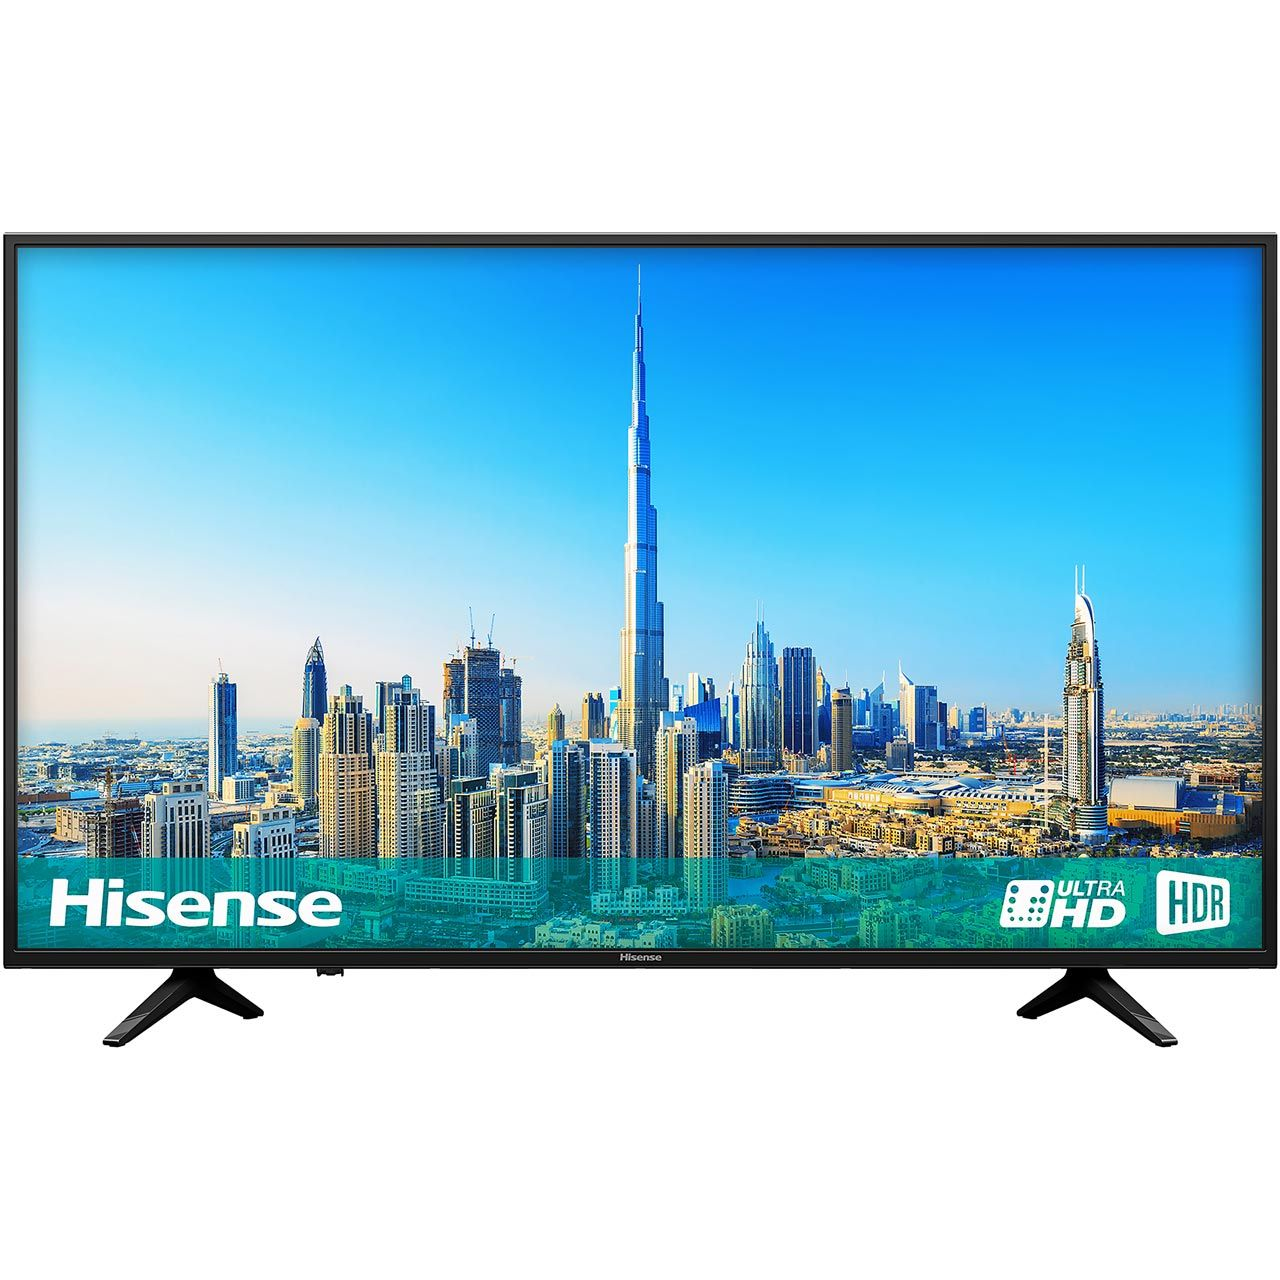 Hisense H43a6200uk 43 Smart 4k Ultra Hd Tv Hdr10 And Freeview